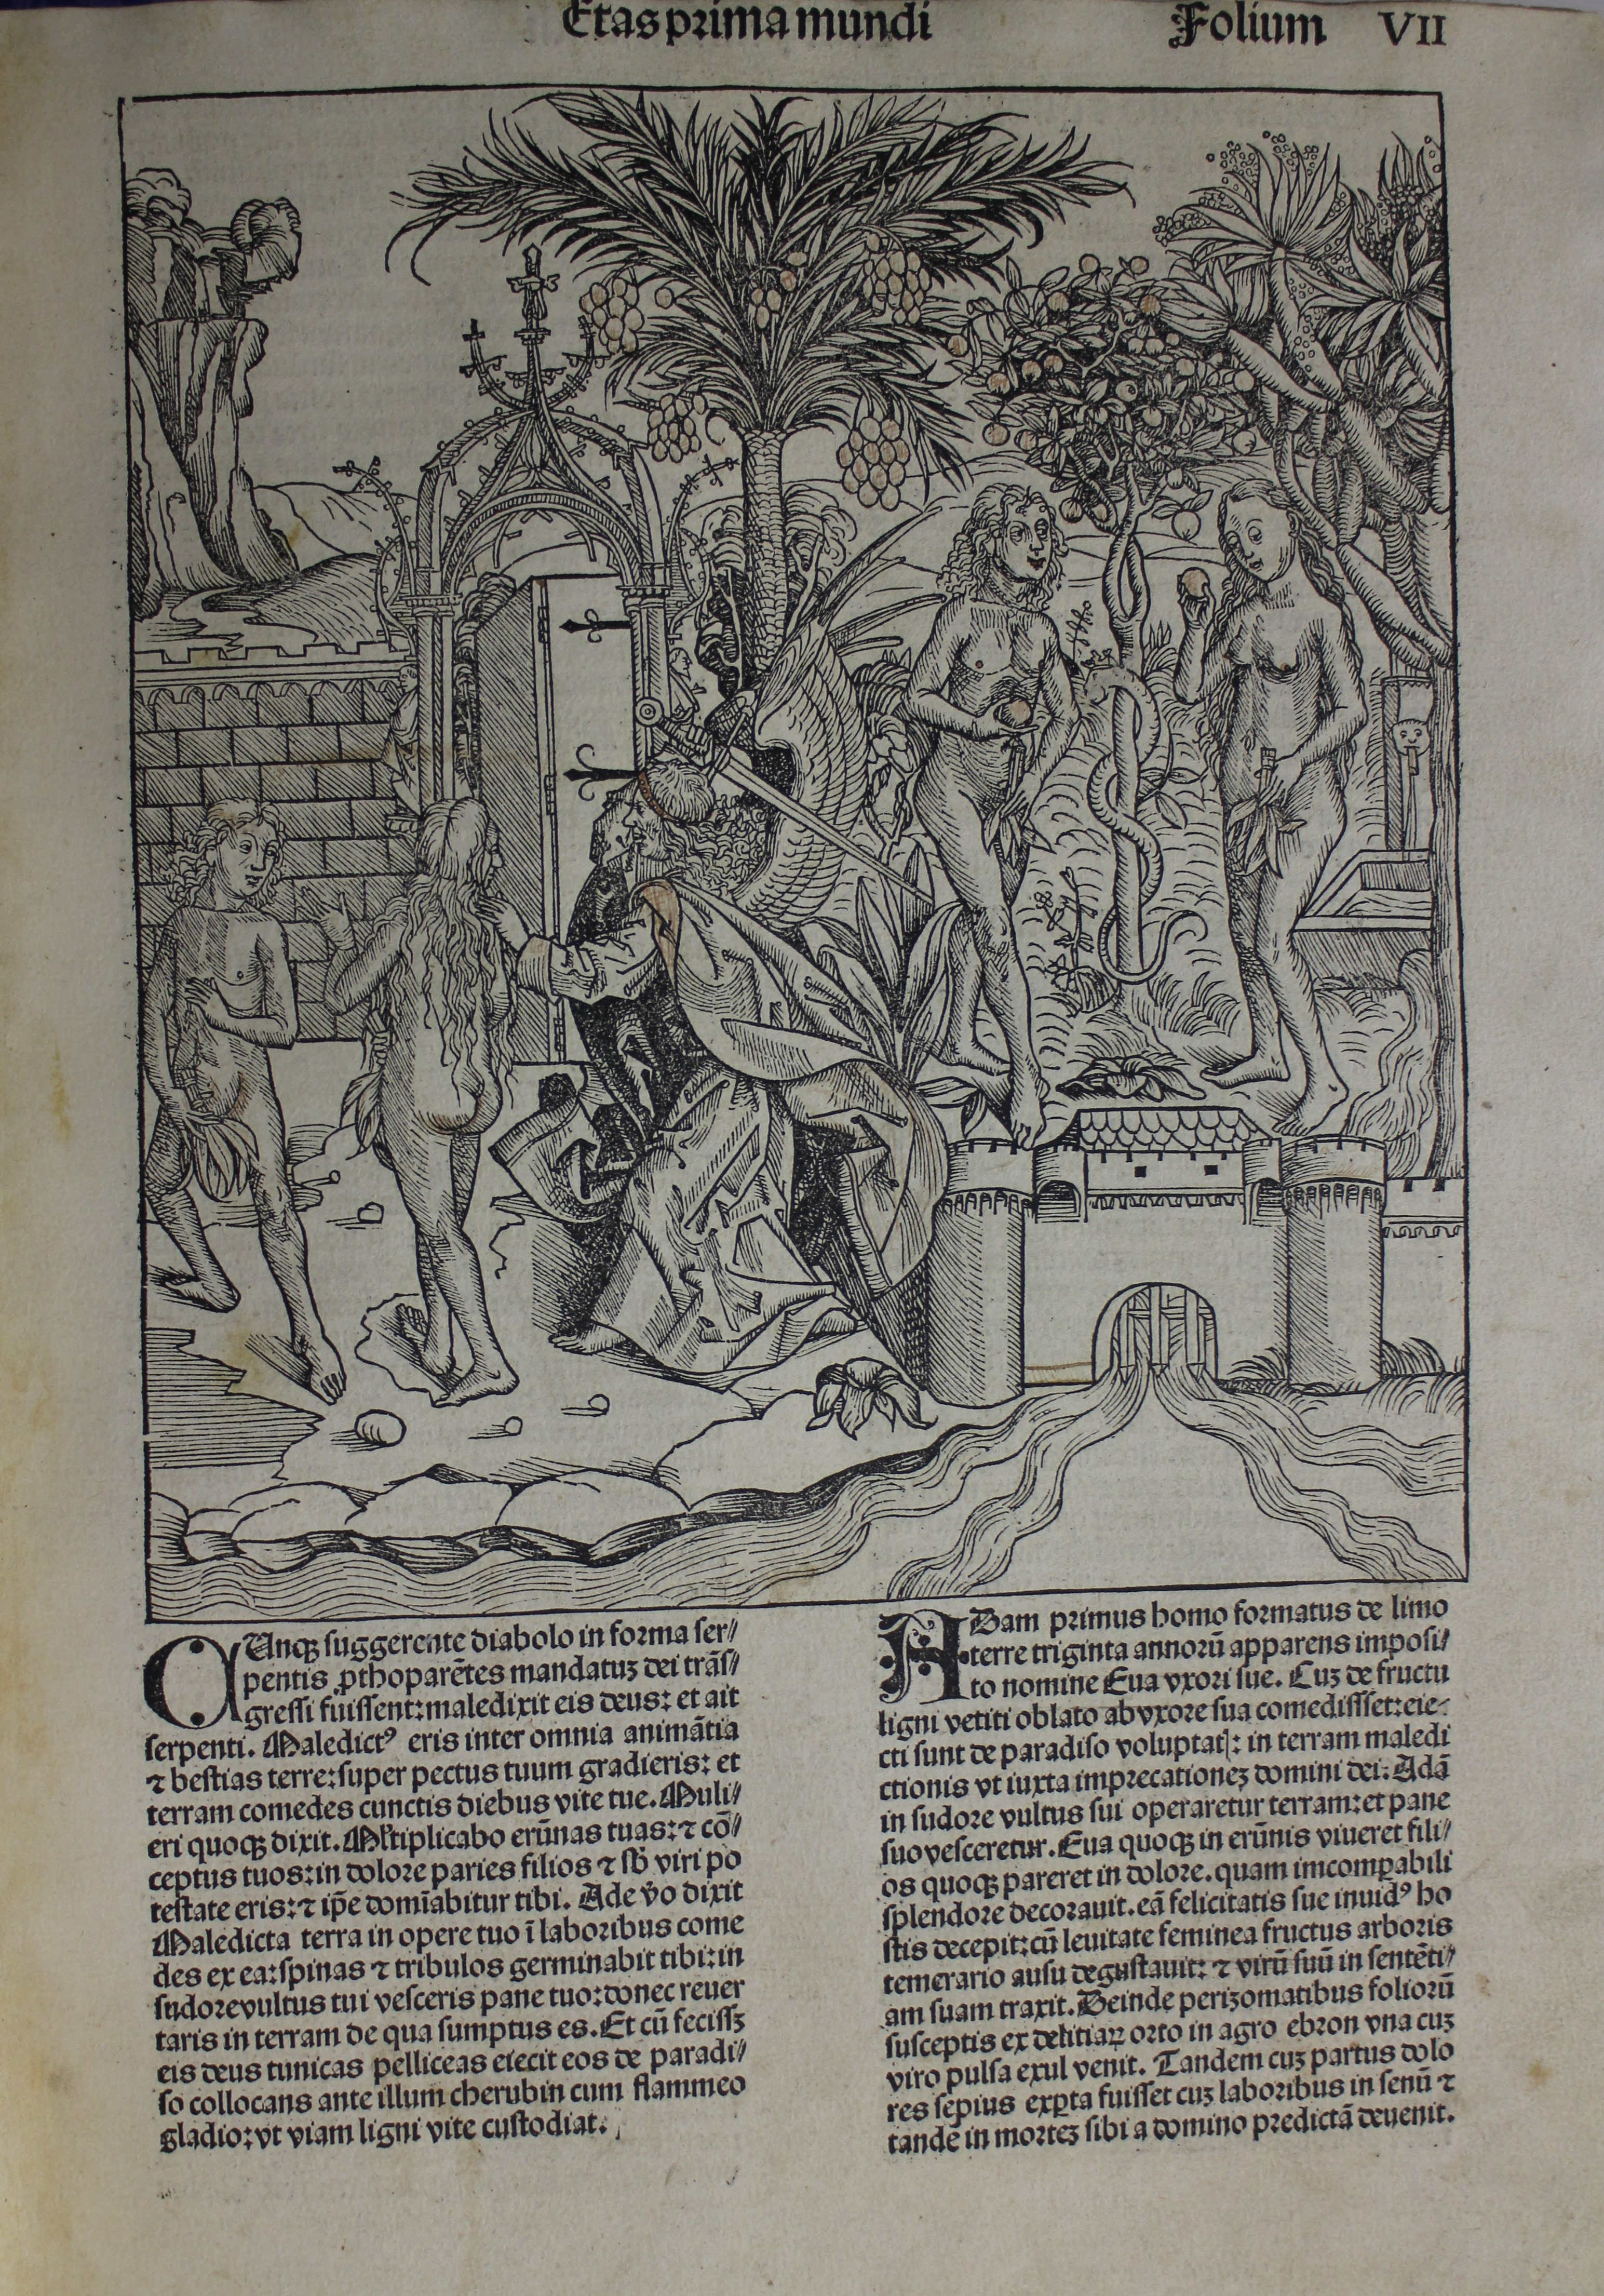 An illustration showing Adam and Eve eating the apple from the Tree of Knowledge